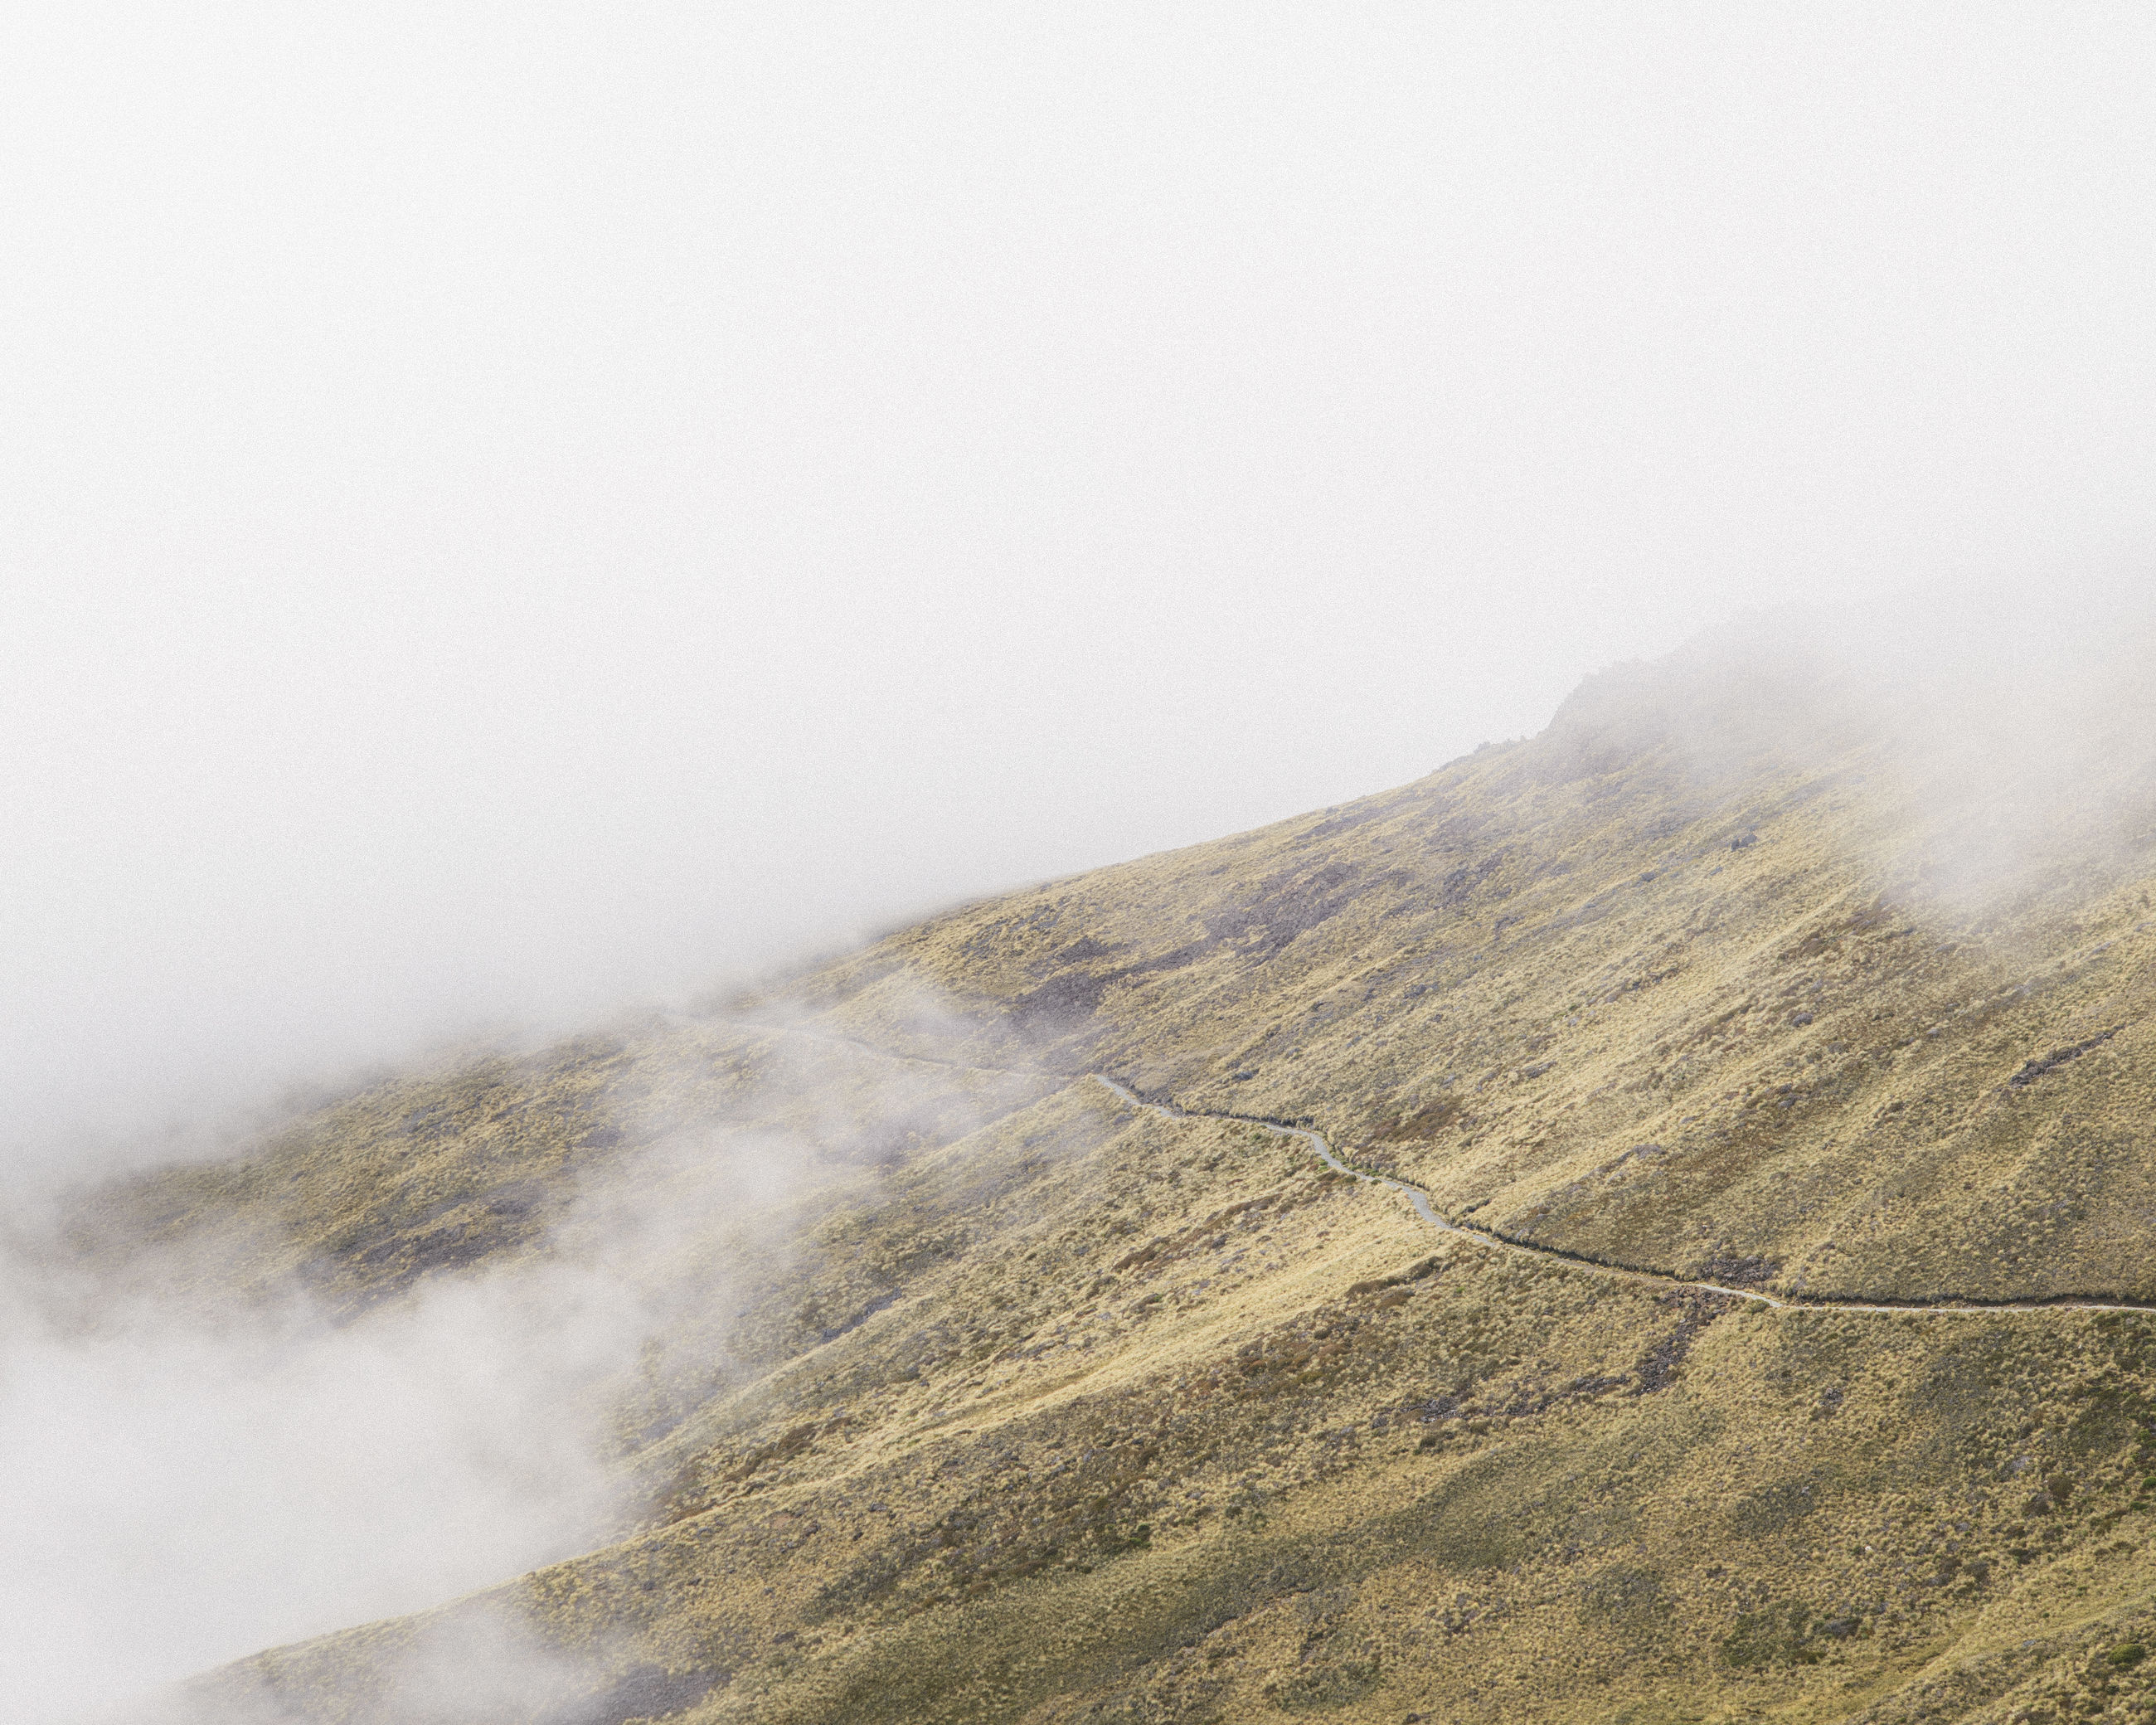 fog, foggy, copy space, weather, nature, tranquility, beauty in nature, scenics, landscape, day, sky, no people, tranquil scene, aerial view, mist, outdoors, backgrounds, high angle view, season